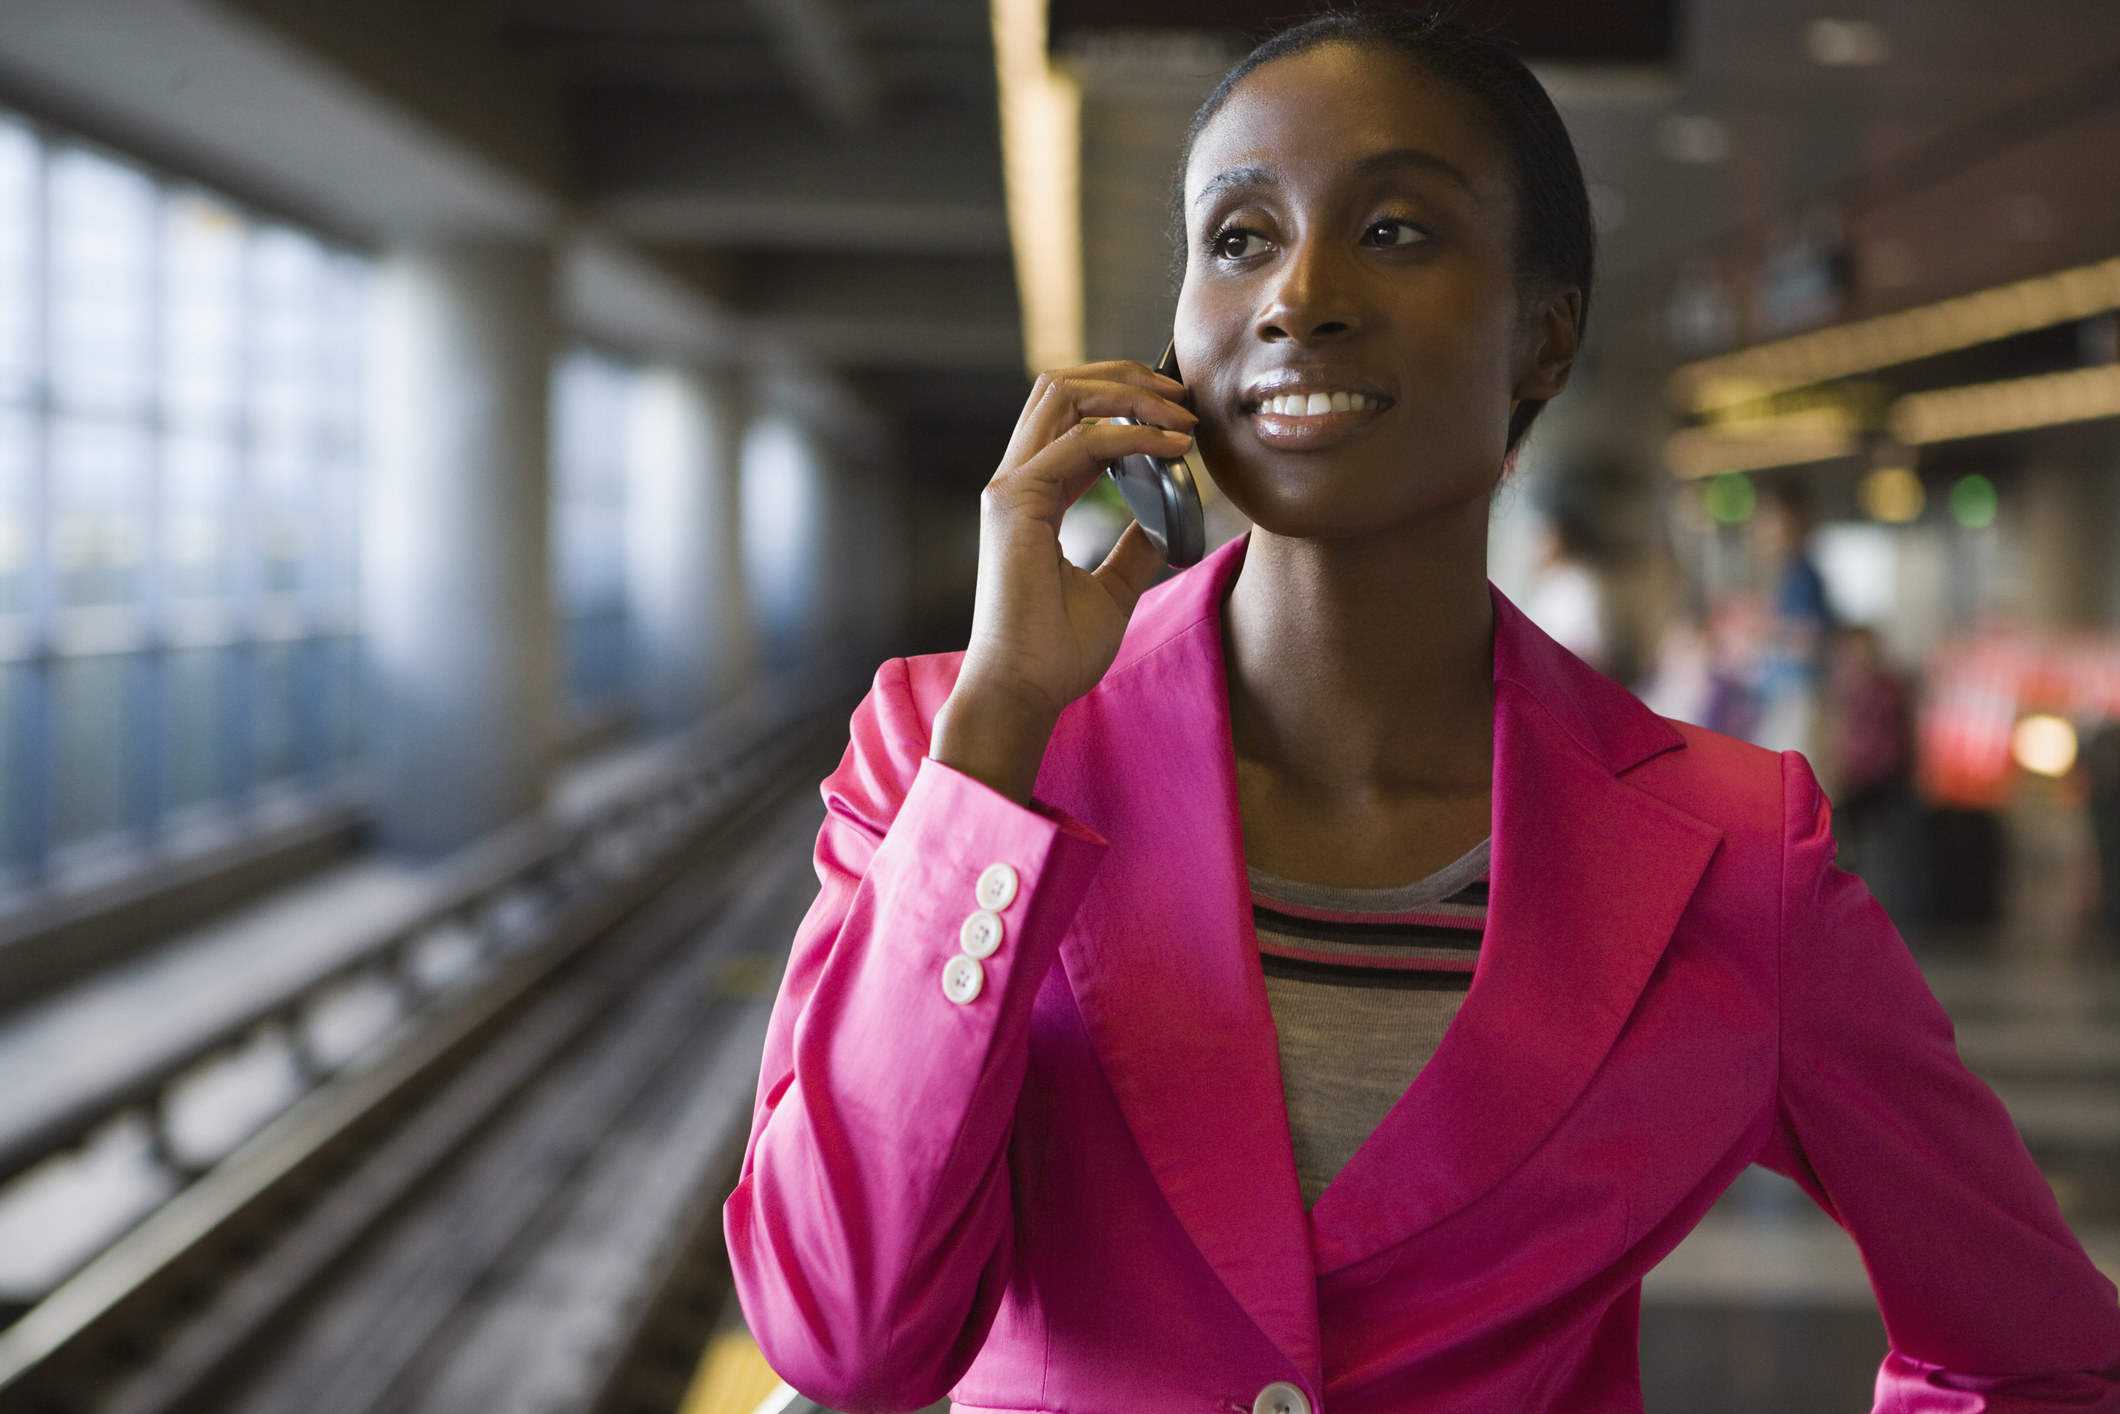 Woman in pink suit on phone while standing on subway platform